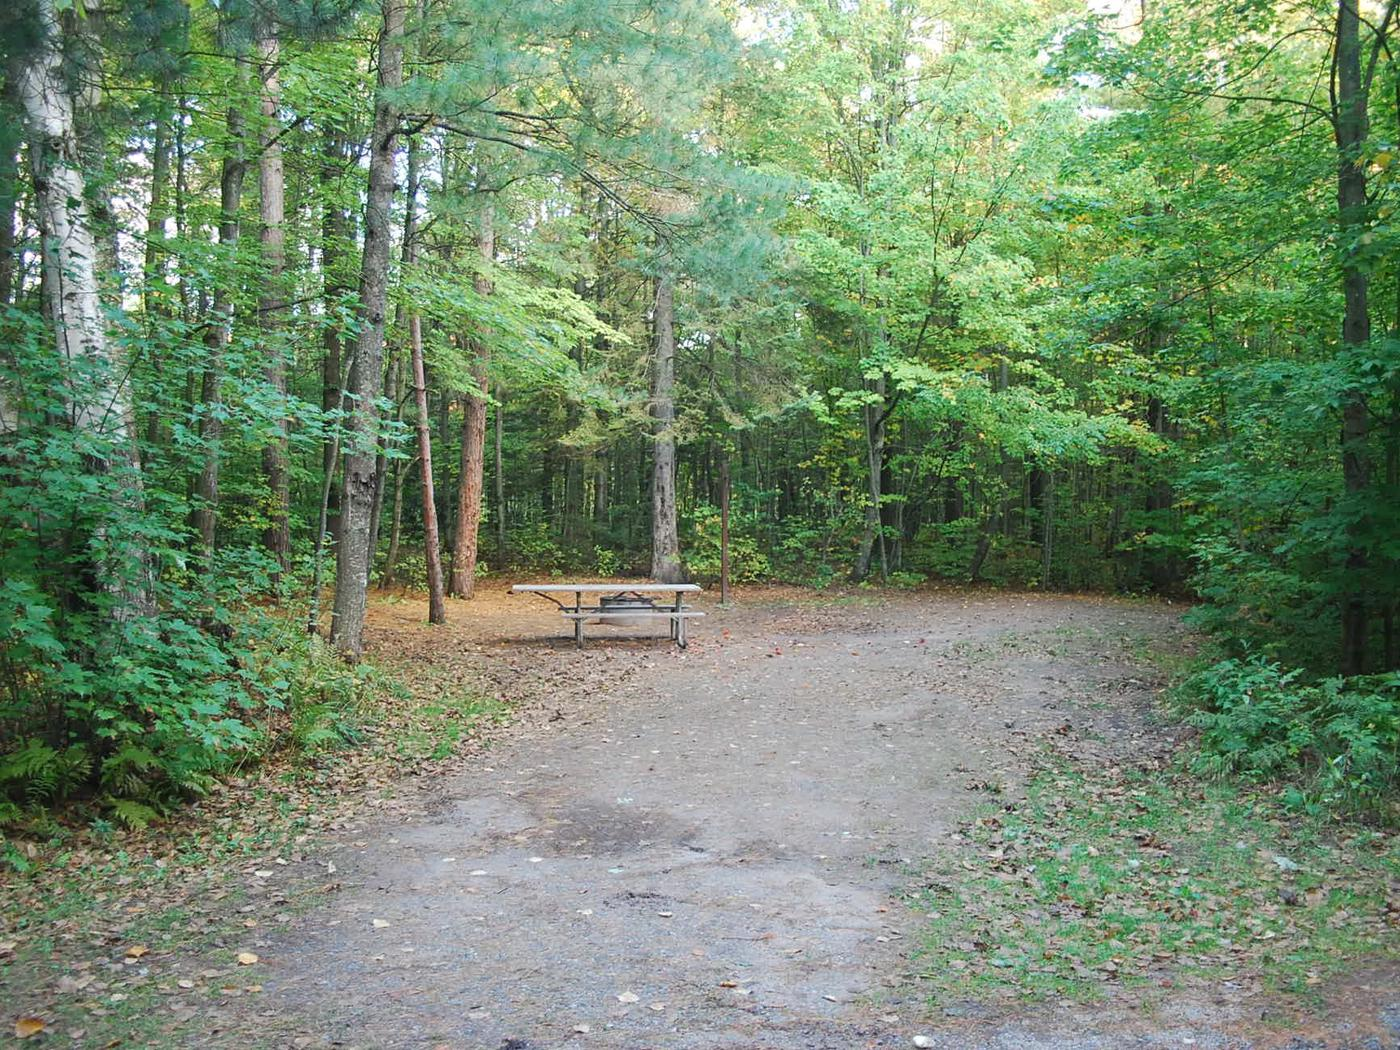 Bay Furnace Campground site #19; heavily treed site with picnic table and fire pit.